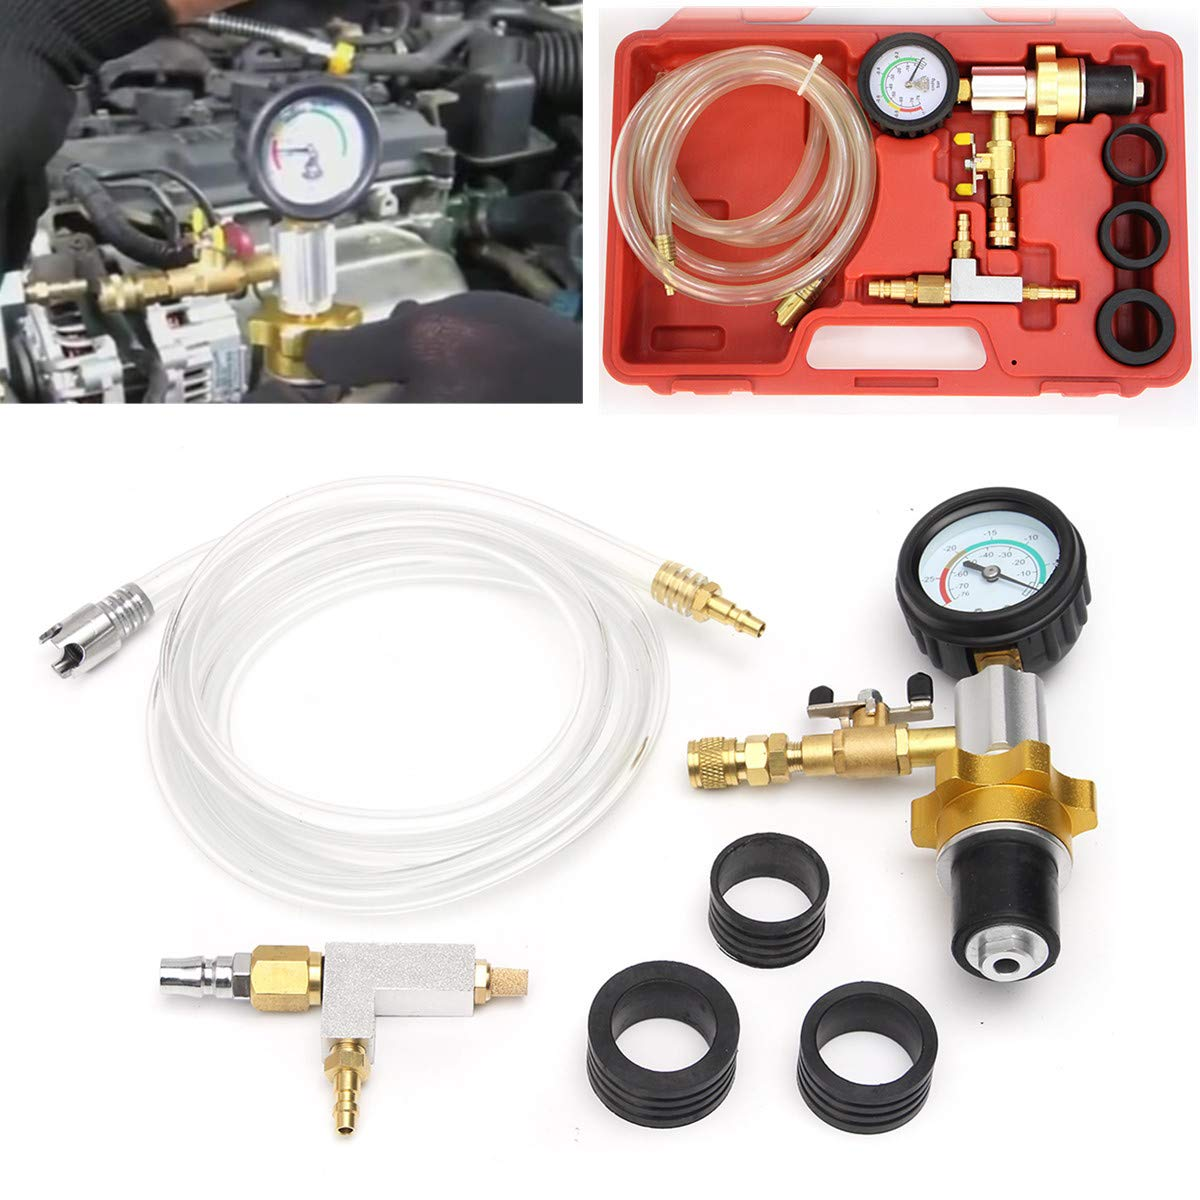 Lopbinte Vacuum Cooling System Car Radiator Coolant Refill /& Purging Tool Gauge Kit With Air Pump Car Wash Easy Connect